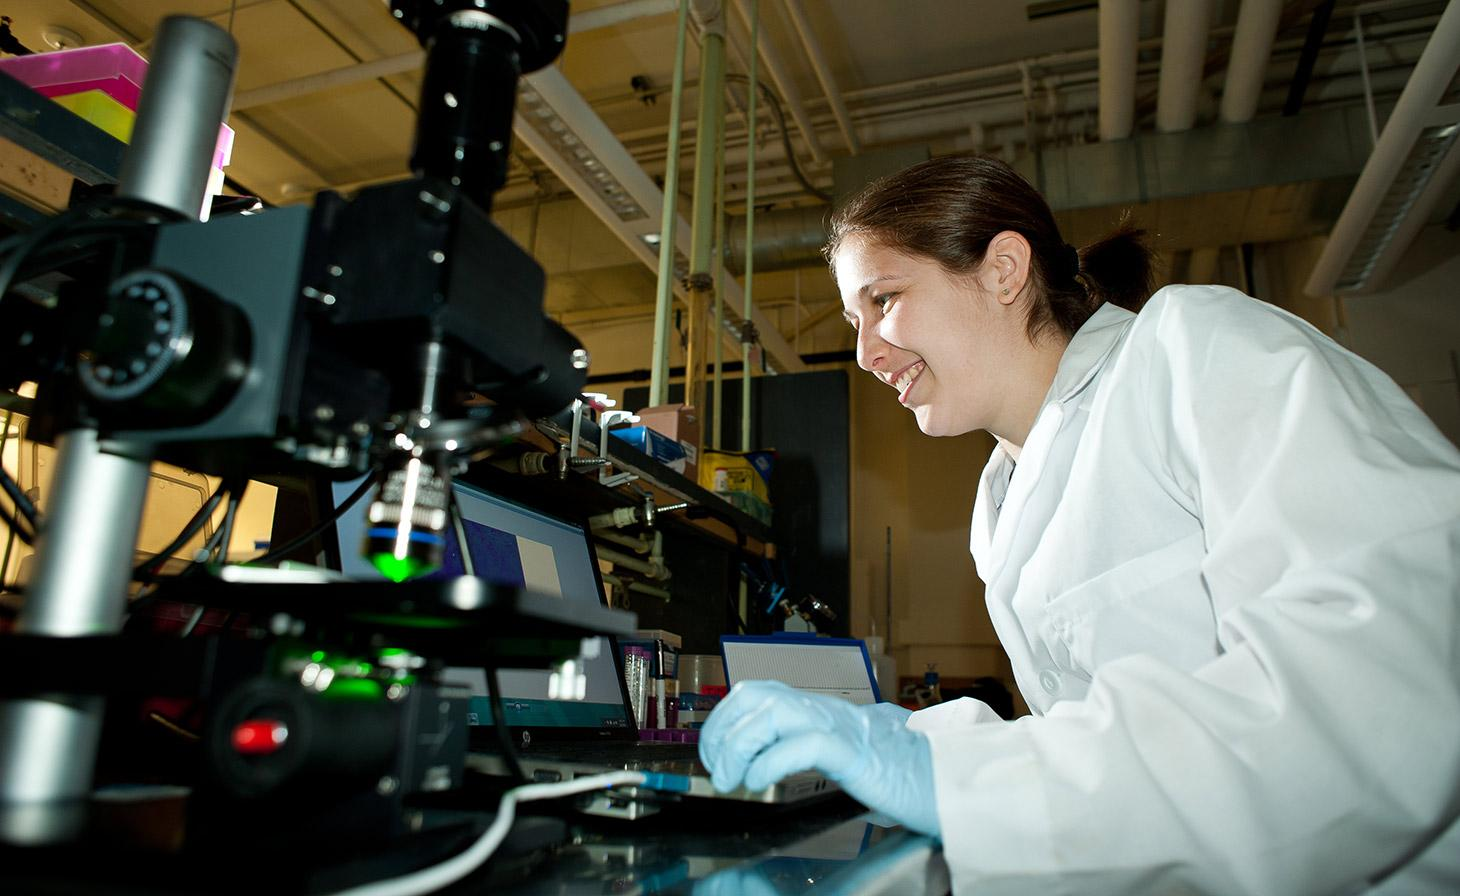 Student working with Genome research machinery